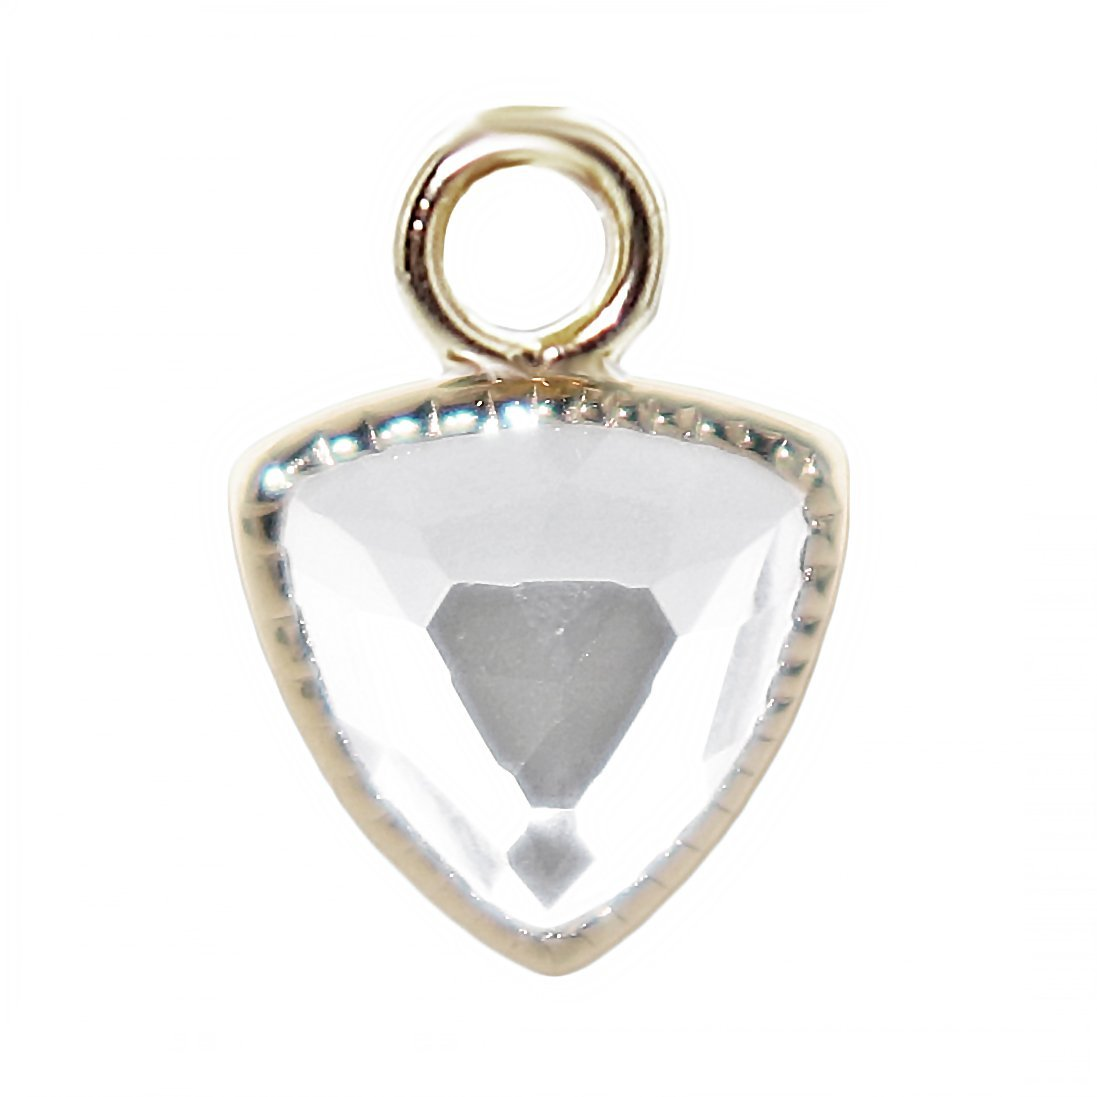 FREEDOM ICON - WHITE TOPAZ & SILVER - SO PRETTY CARA COTTER